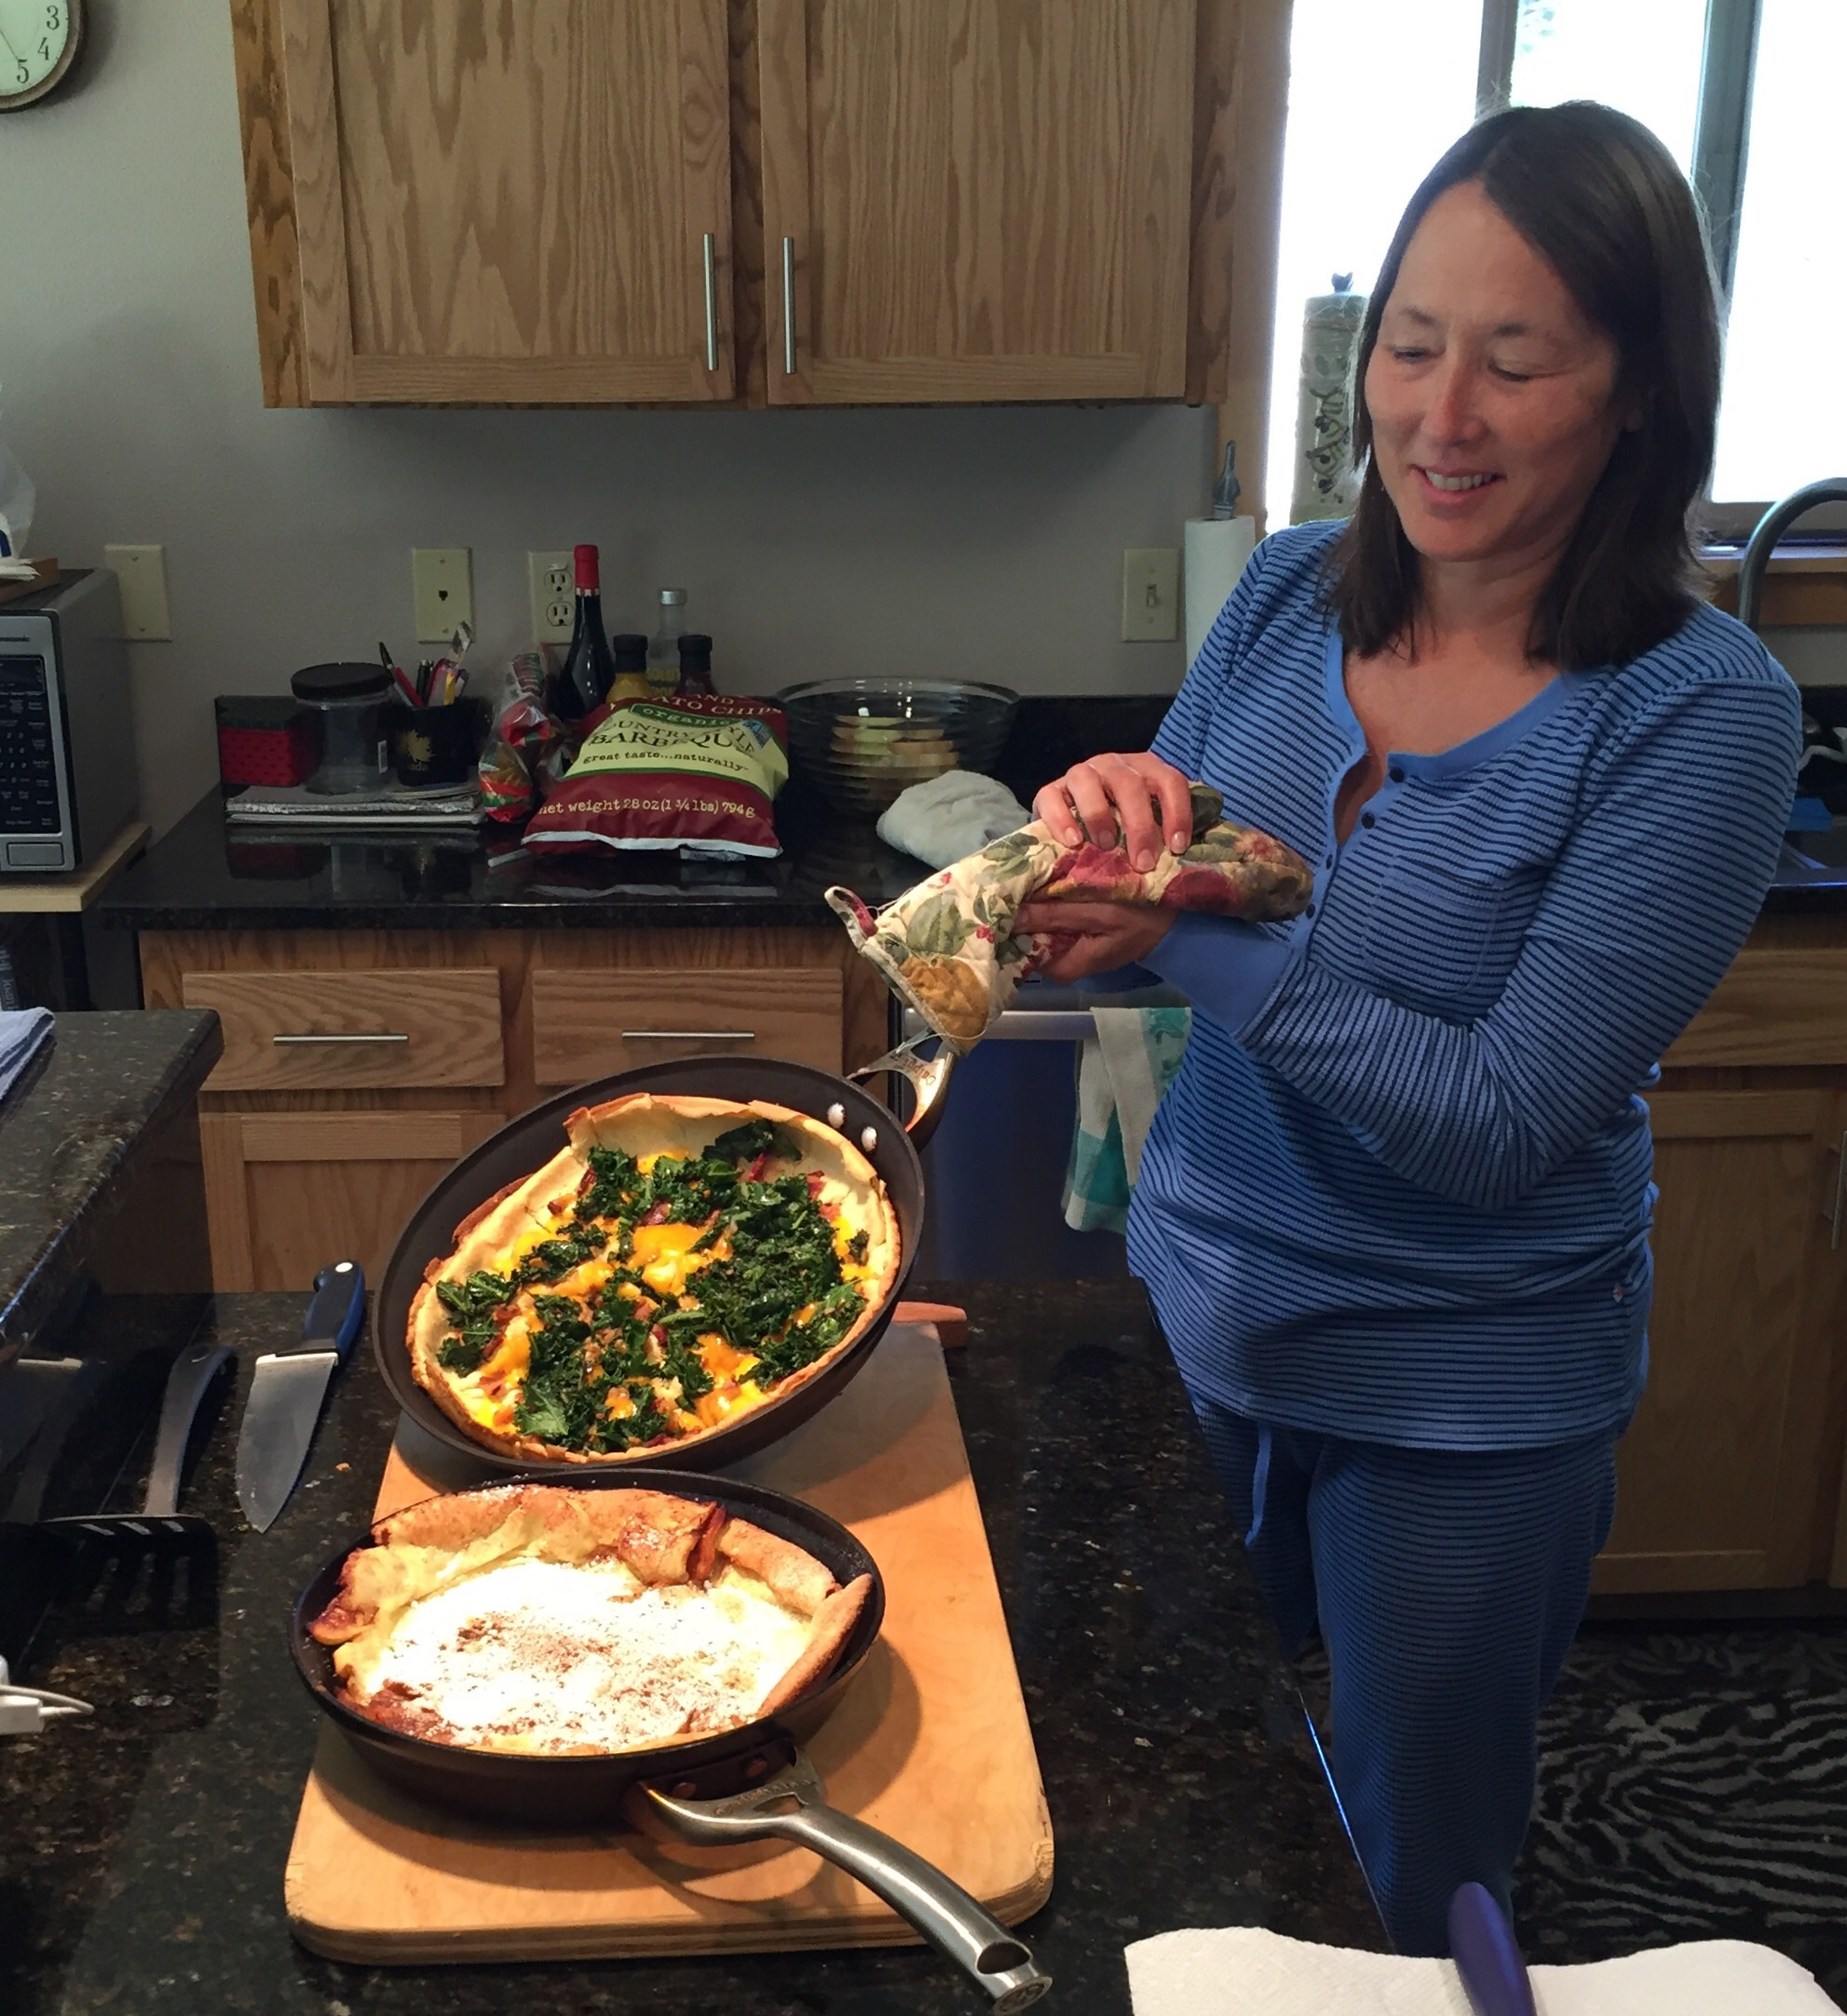 A sweet and a savory Dutch baby - both delicious!!